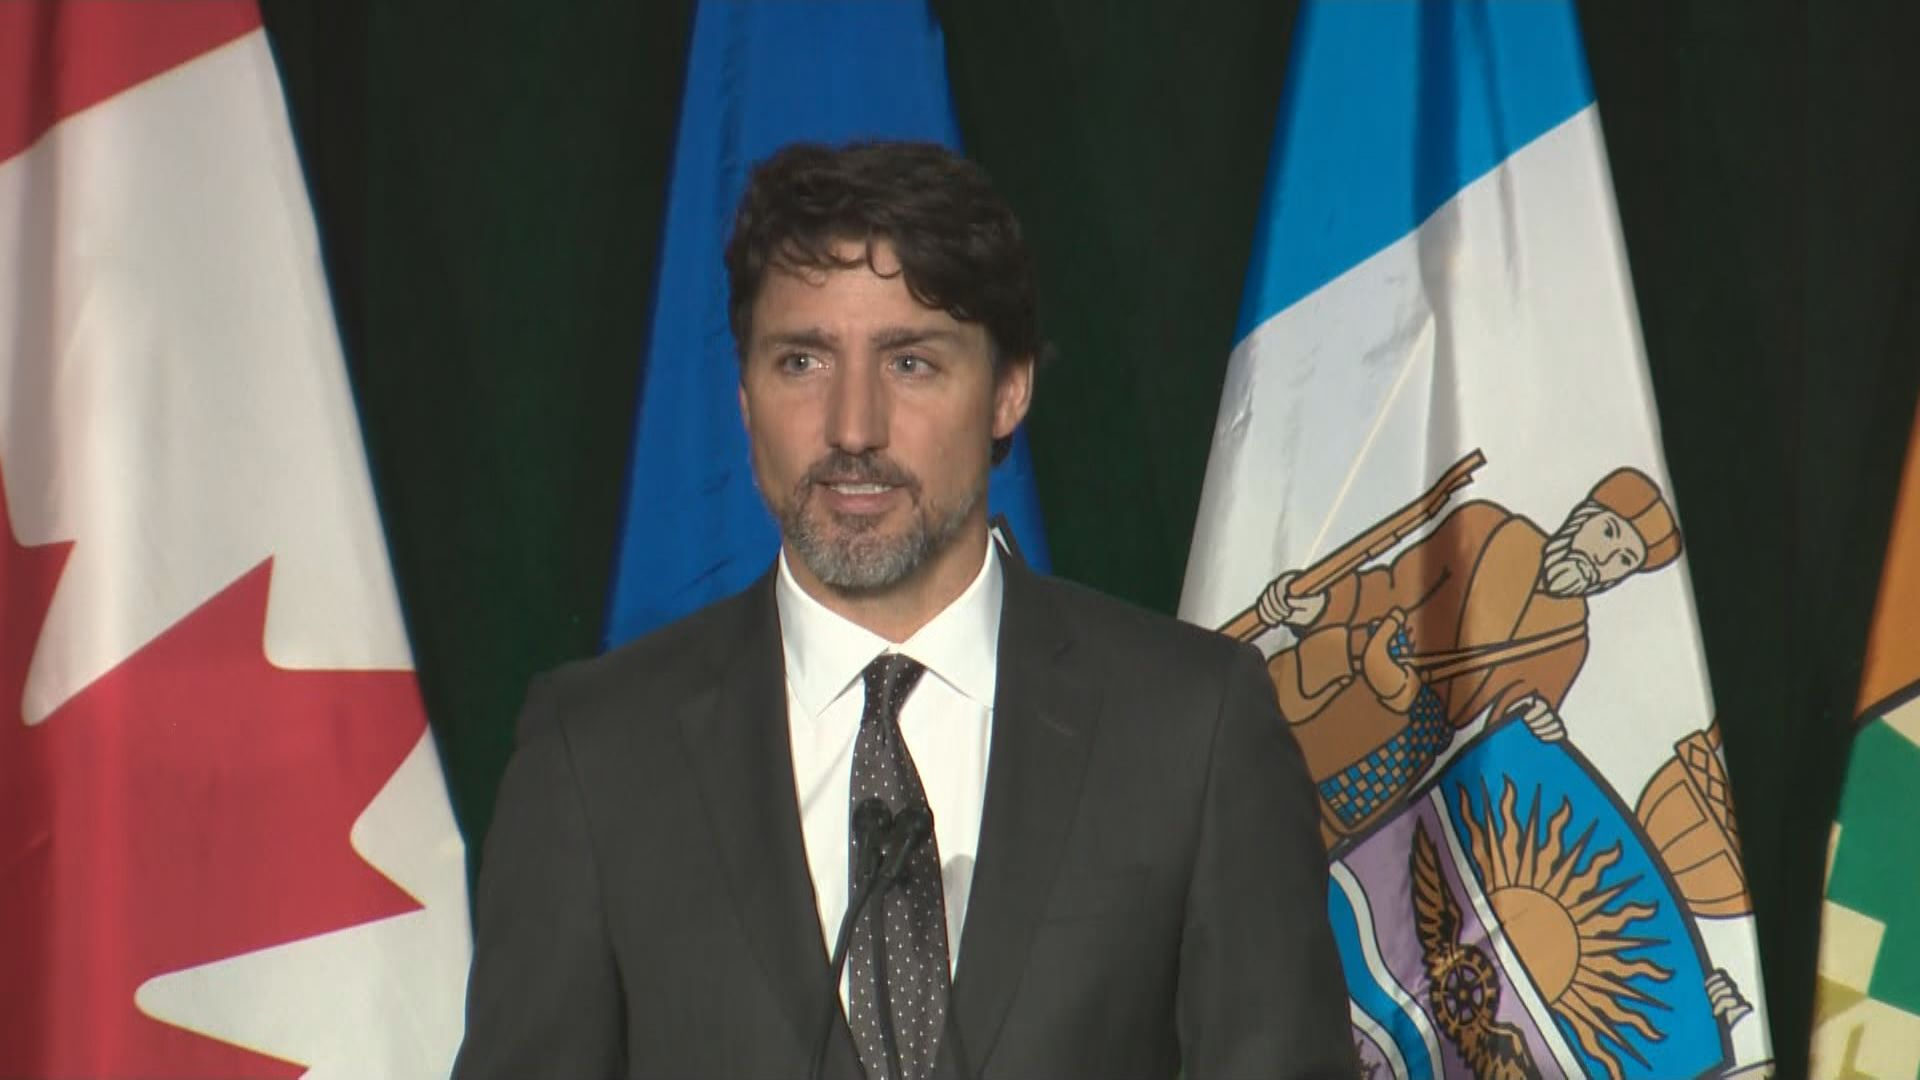 Justin Trudeau speaks at Edmonton memorial for Iran plane crash victims: 'I am so deeply sorry for your loss'